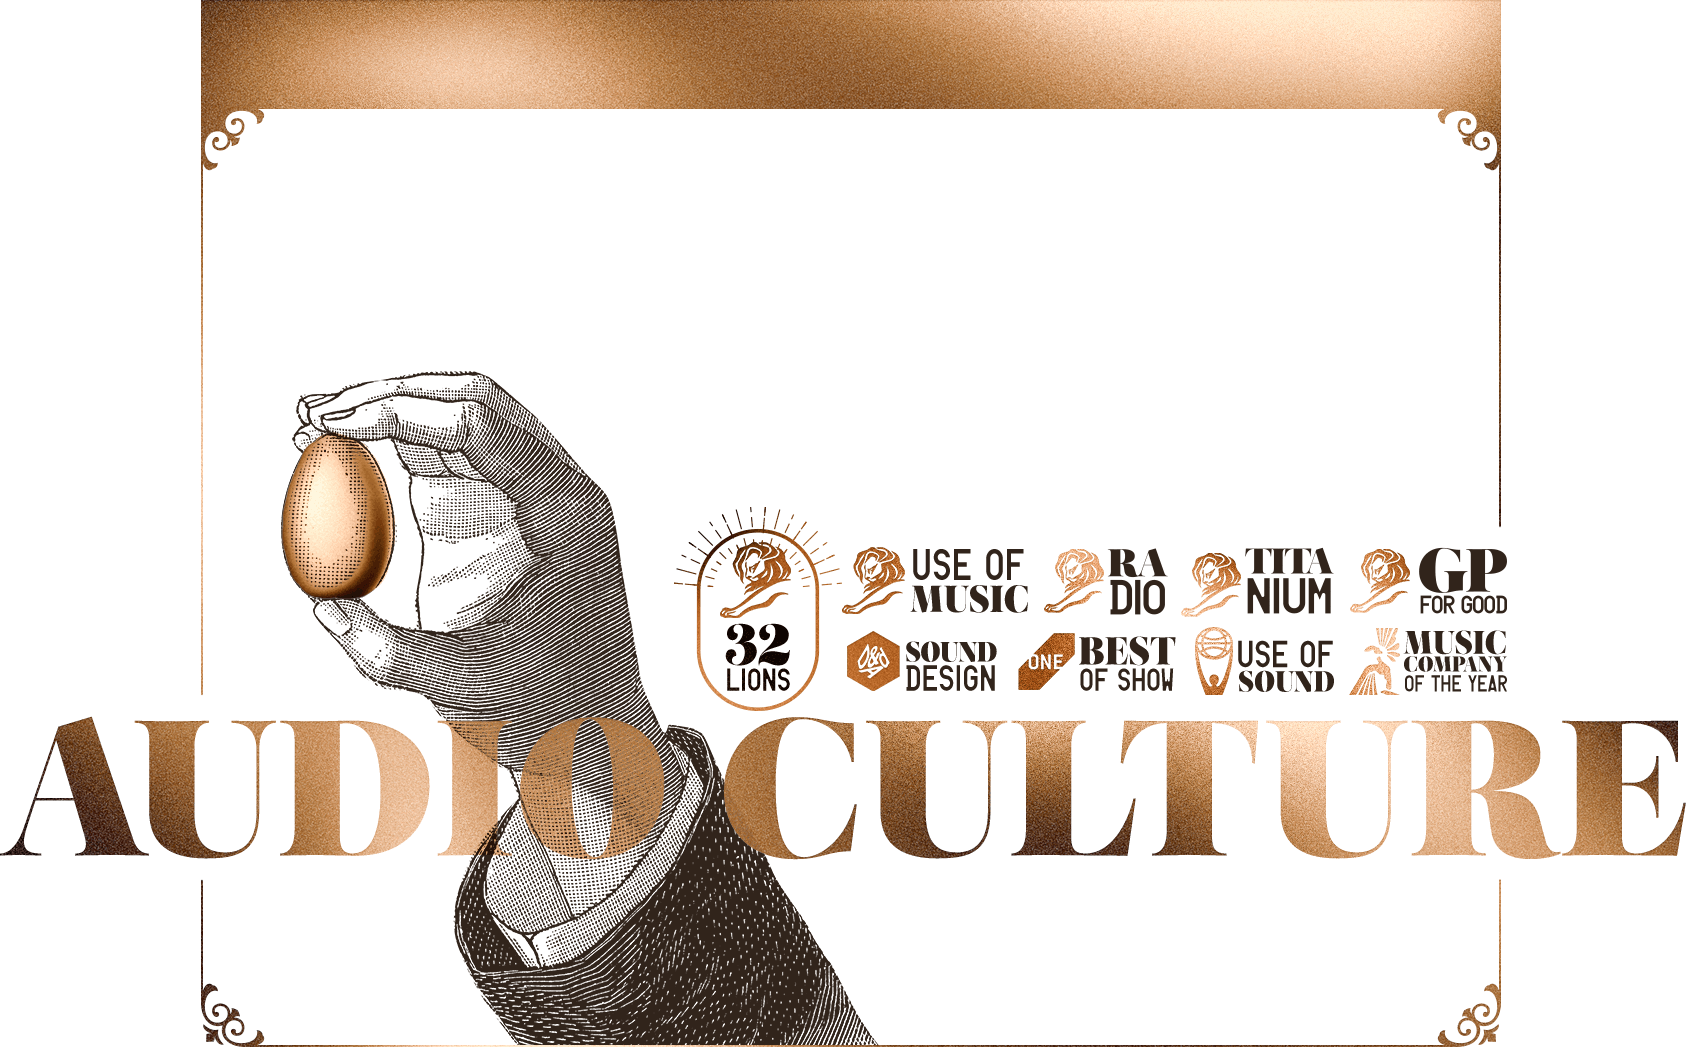 Audio Culture | 23 Lions | One Best of The Show | Best Original Music | Best Use of Music